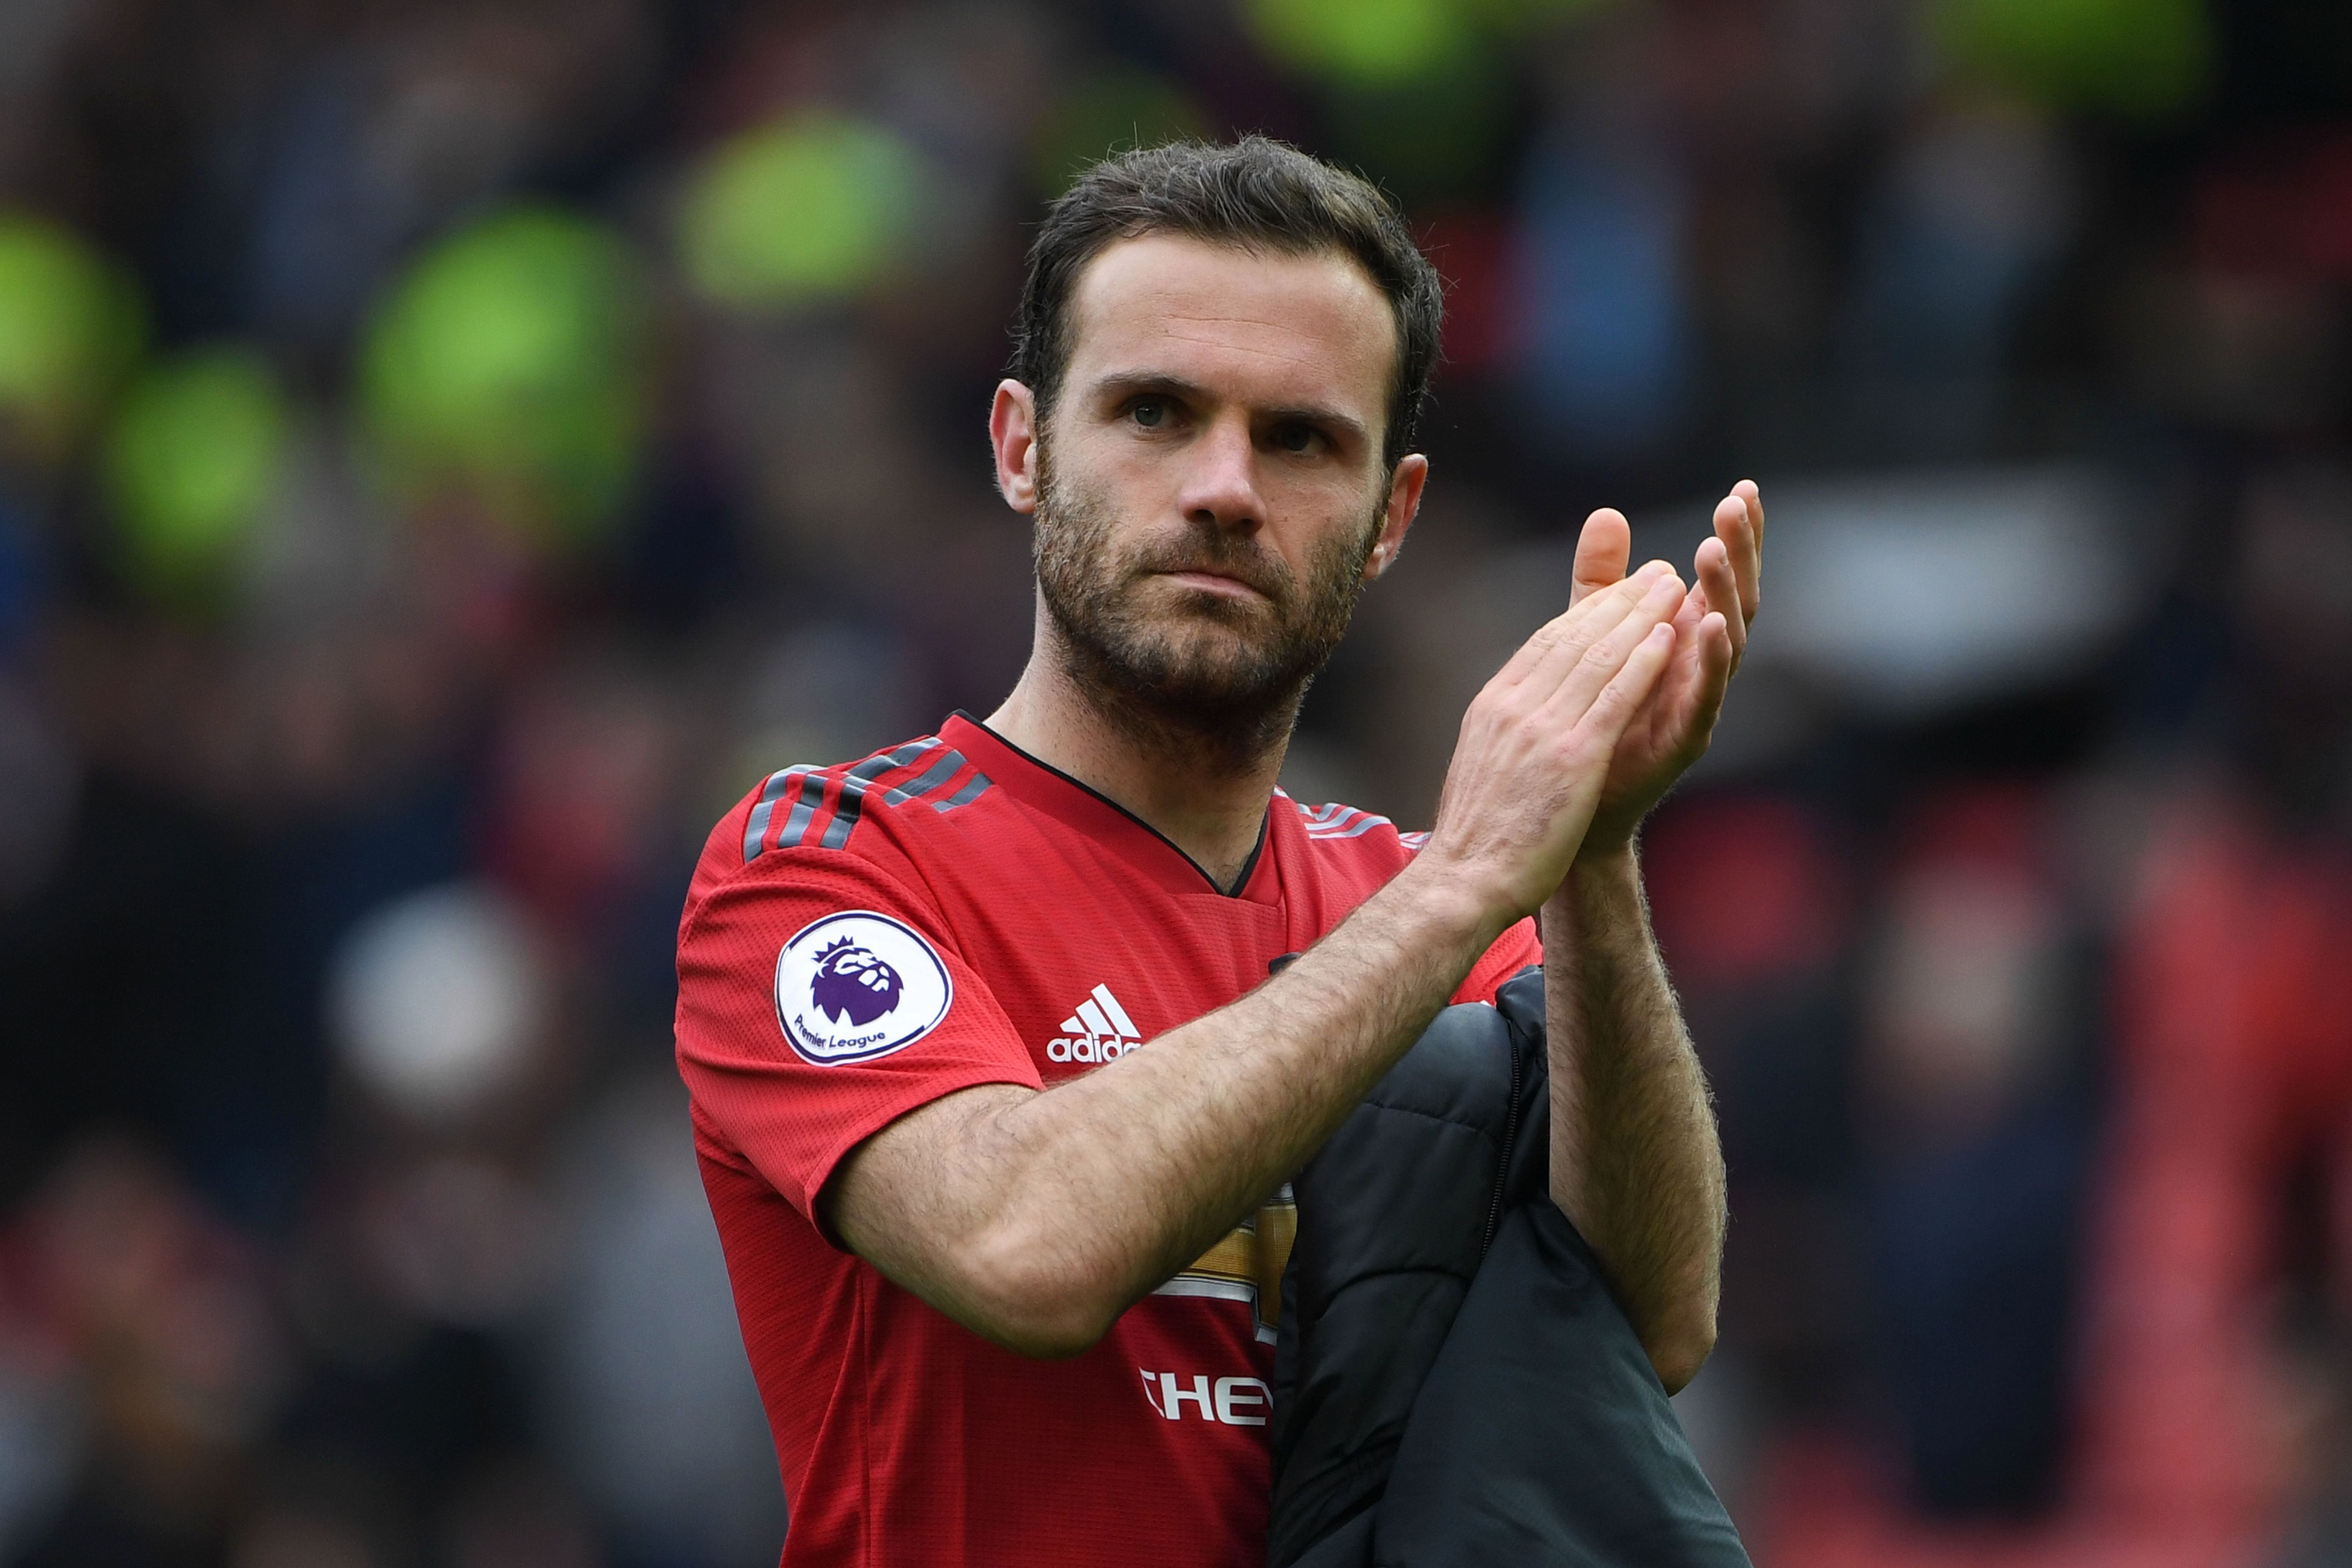 Juan Mata looks to be on his way out of Man United after five years at the club